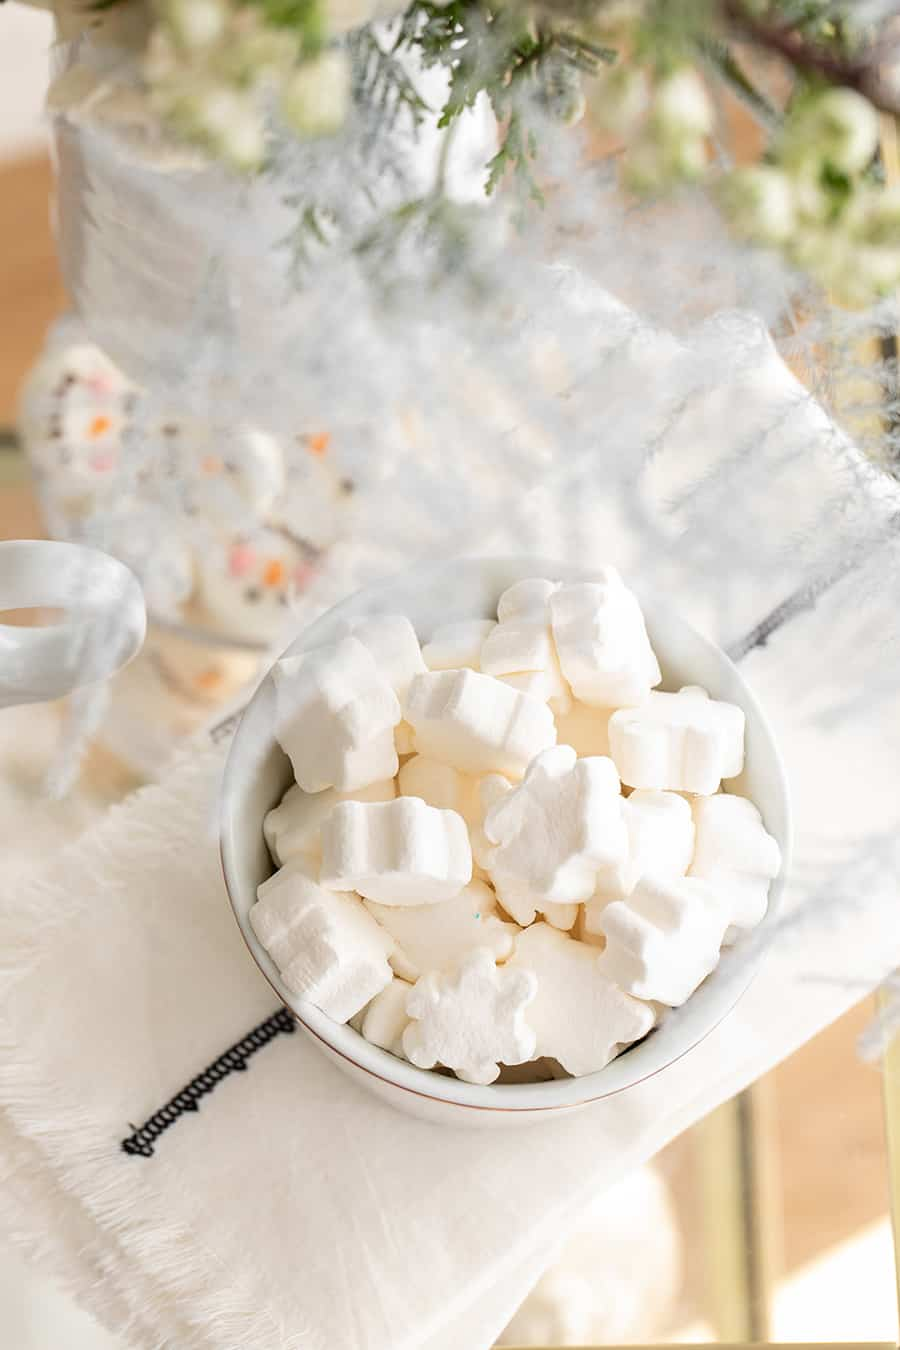 Snowflake marshmallows in a white bowl.